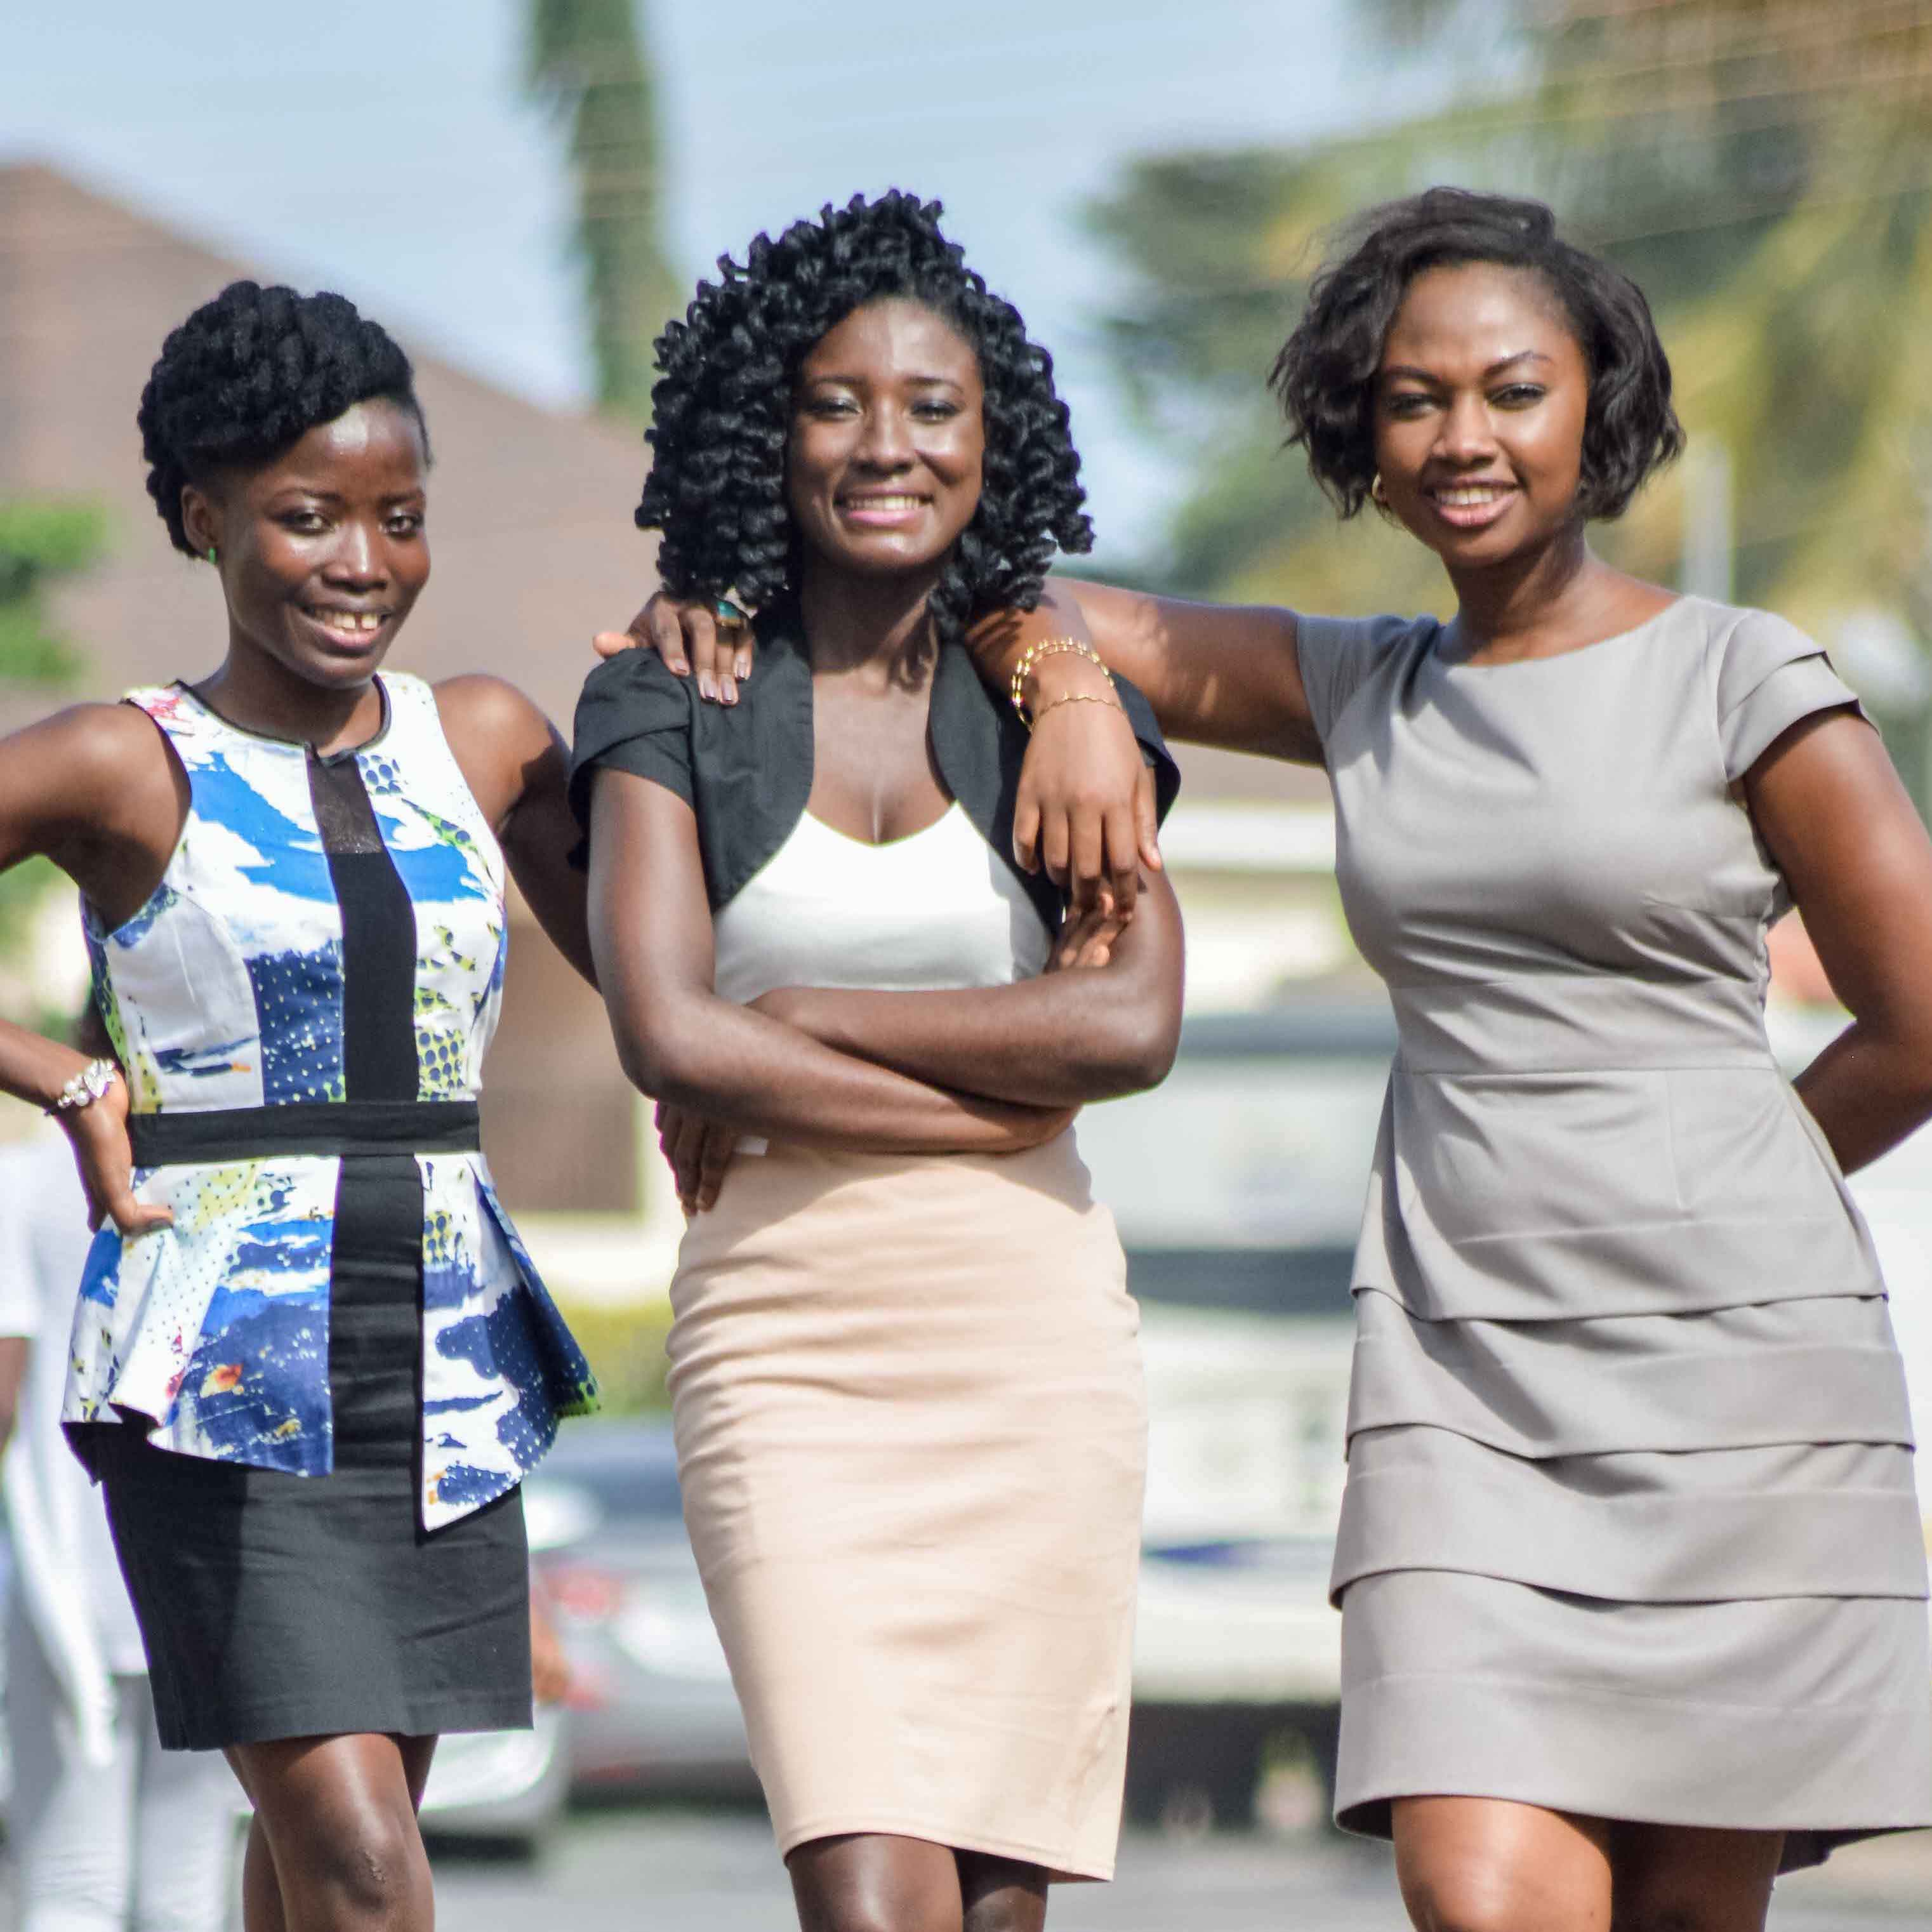 A photo of Priscilla Hazel, Esther Olatunde, and Cassandra Sarfo standing side by side